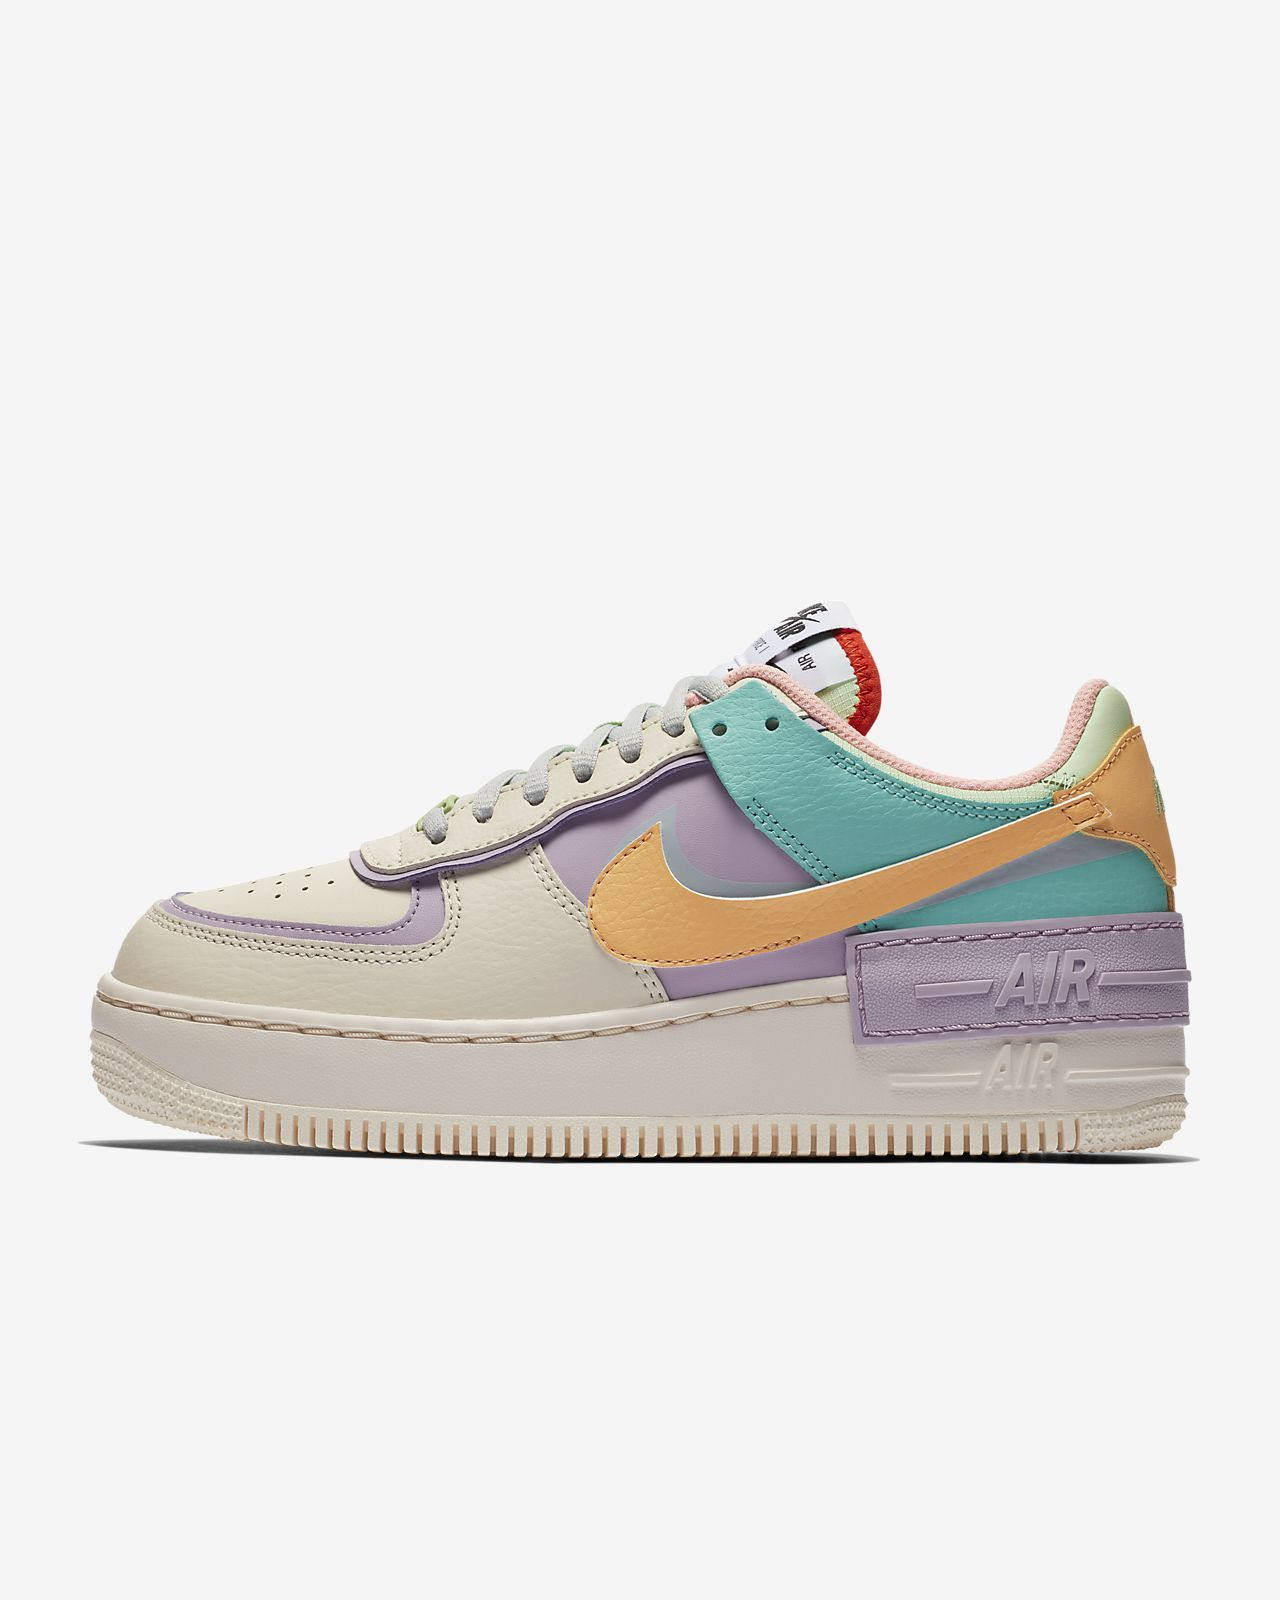 Air Force 1 Shadow Zapatillas - Mujer. Nike ES in 2020 ...